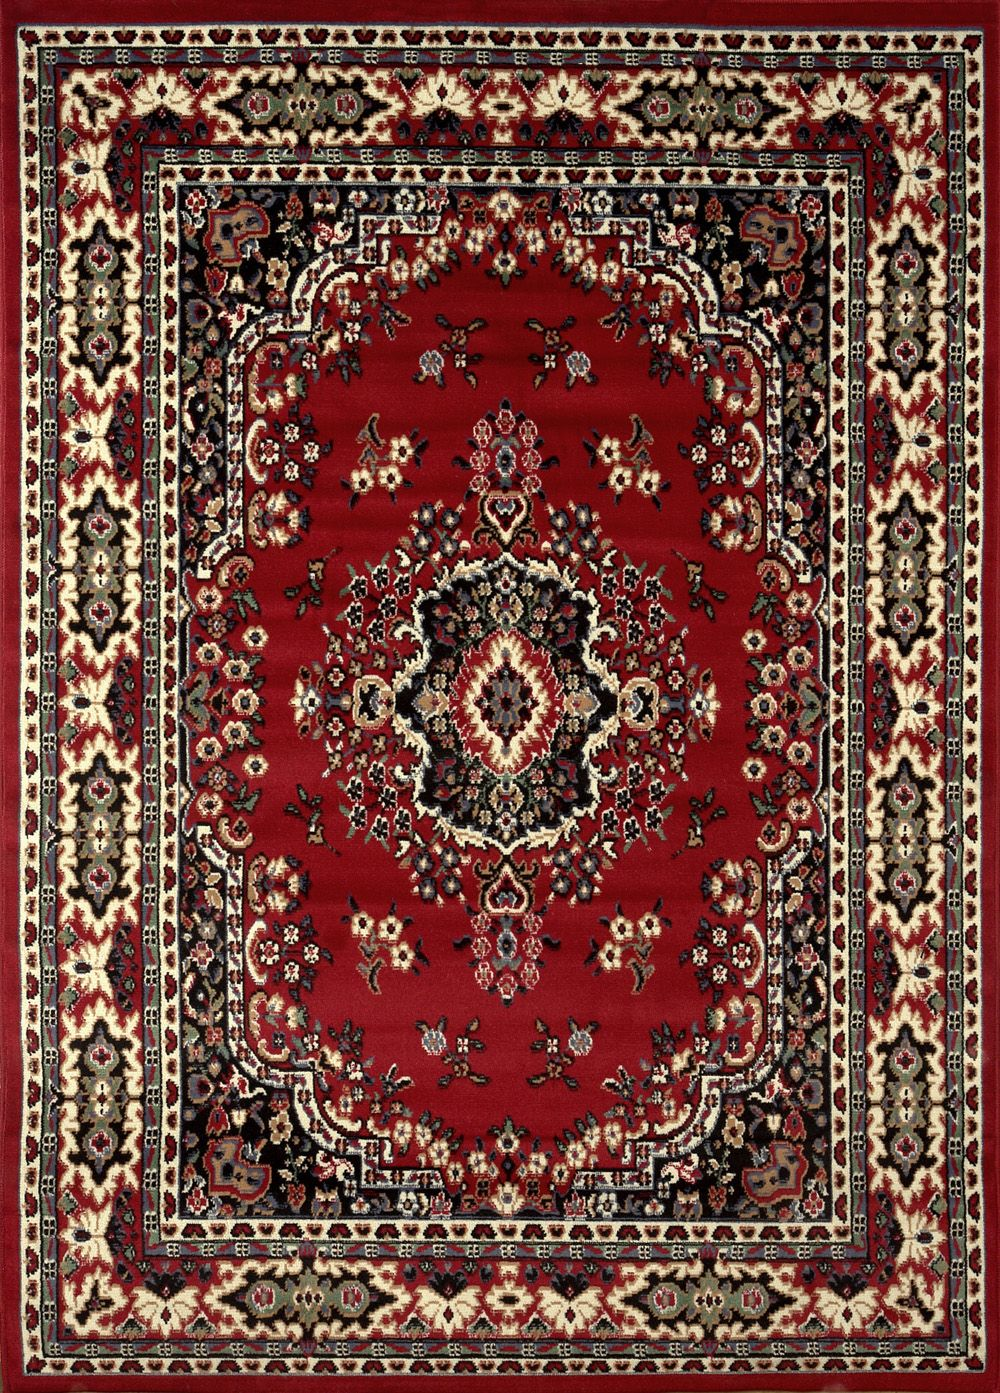 Large traditional 8x11 oriental area rug persian style carpet approx 78 x108